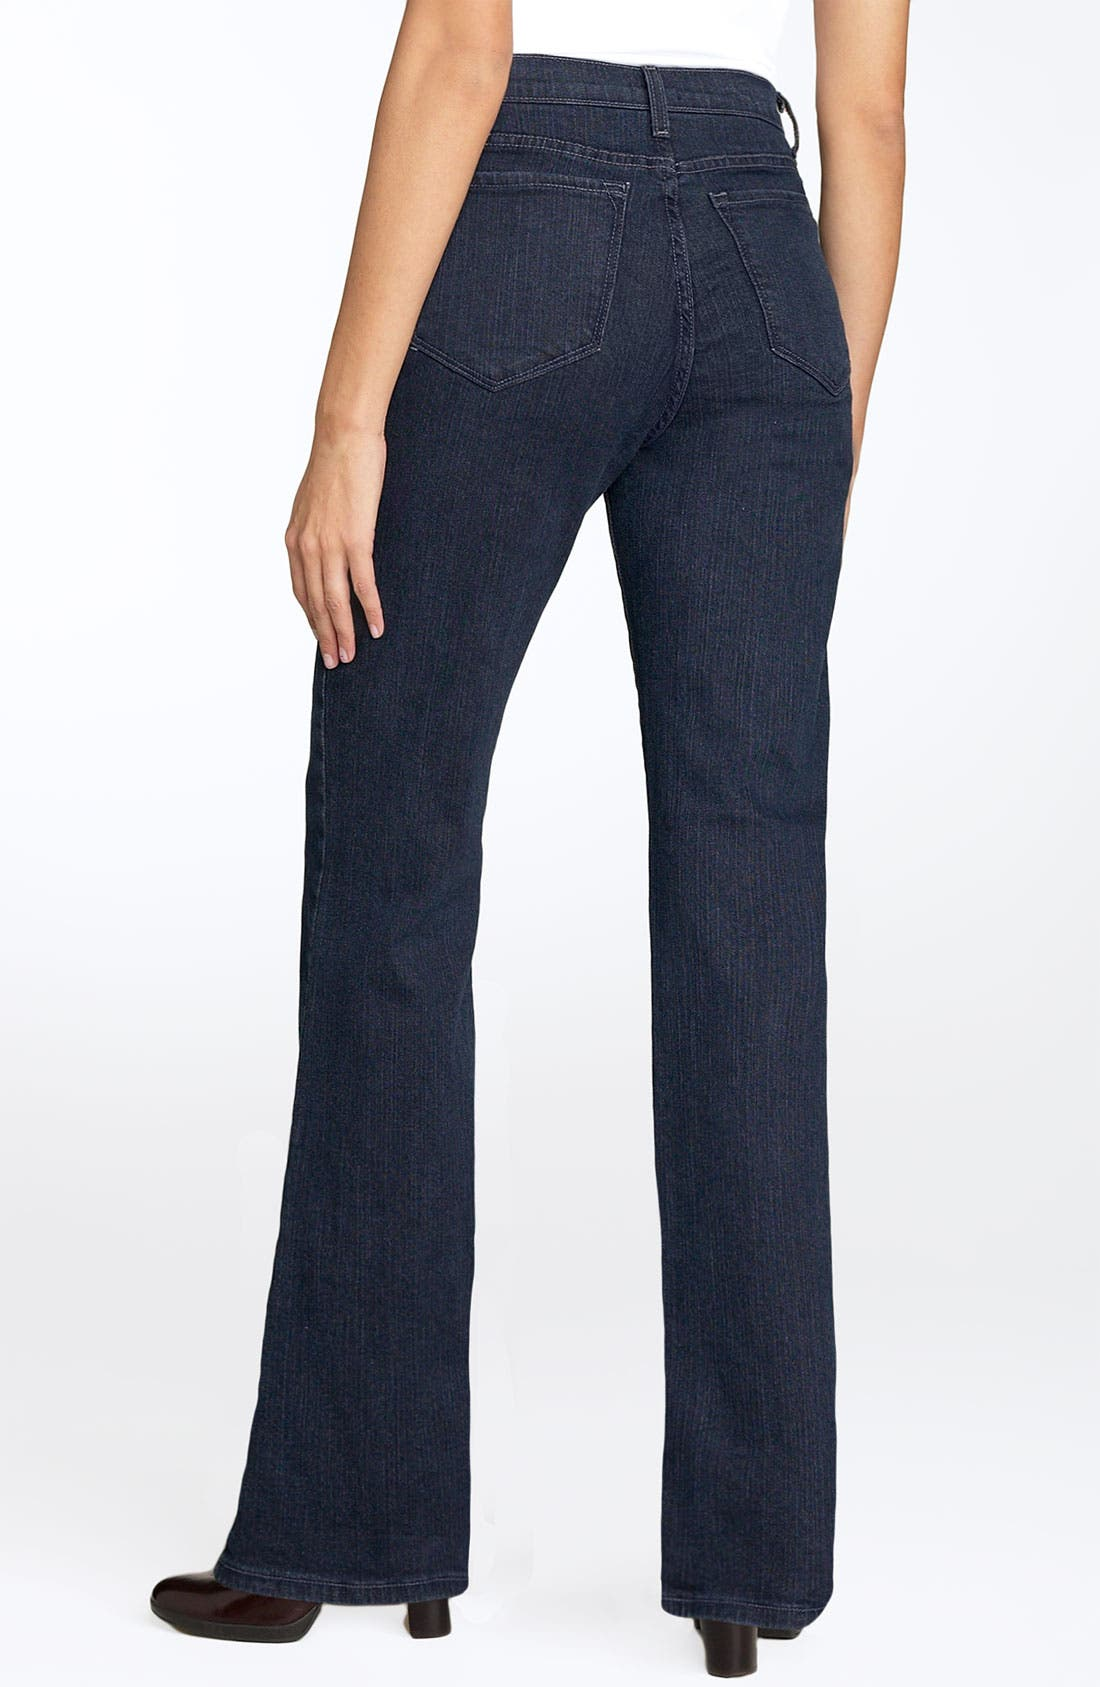 Alternate Image 2  - NYDJ 'Marilyn' Stretch Straight Leg Jeans (Blue Black) (Regular & Petite)